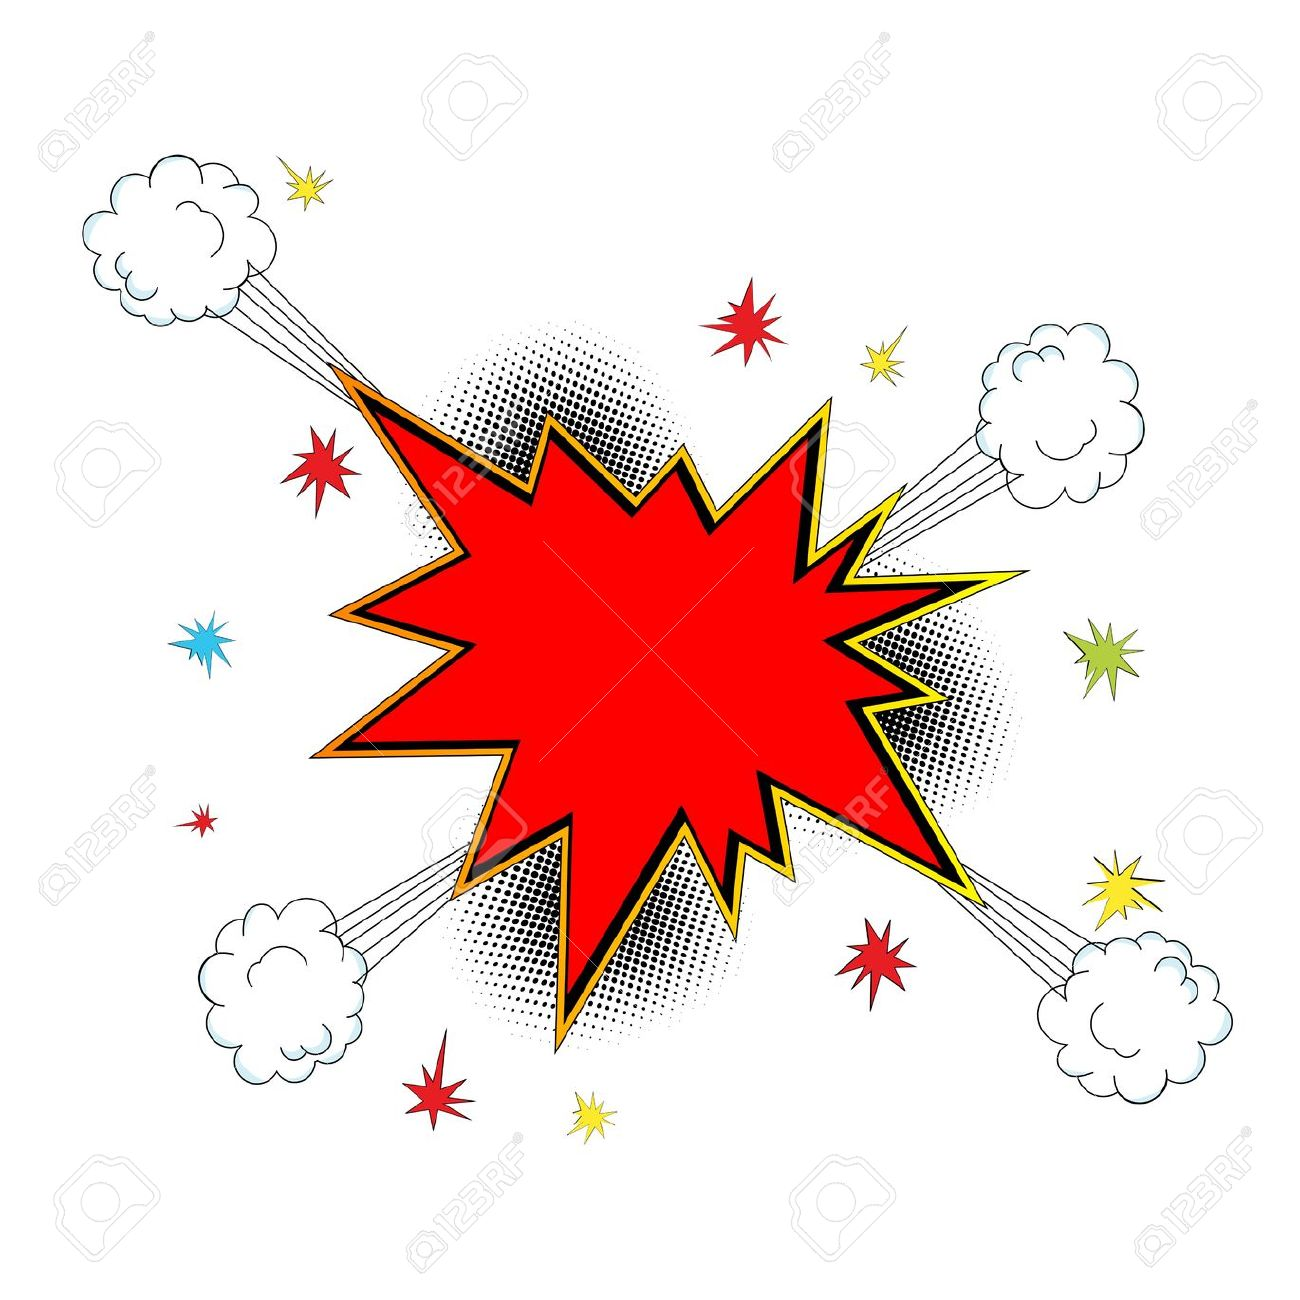 Burst clipart explosion. Explosions balloon pencil and